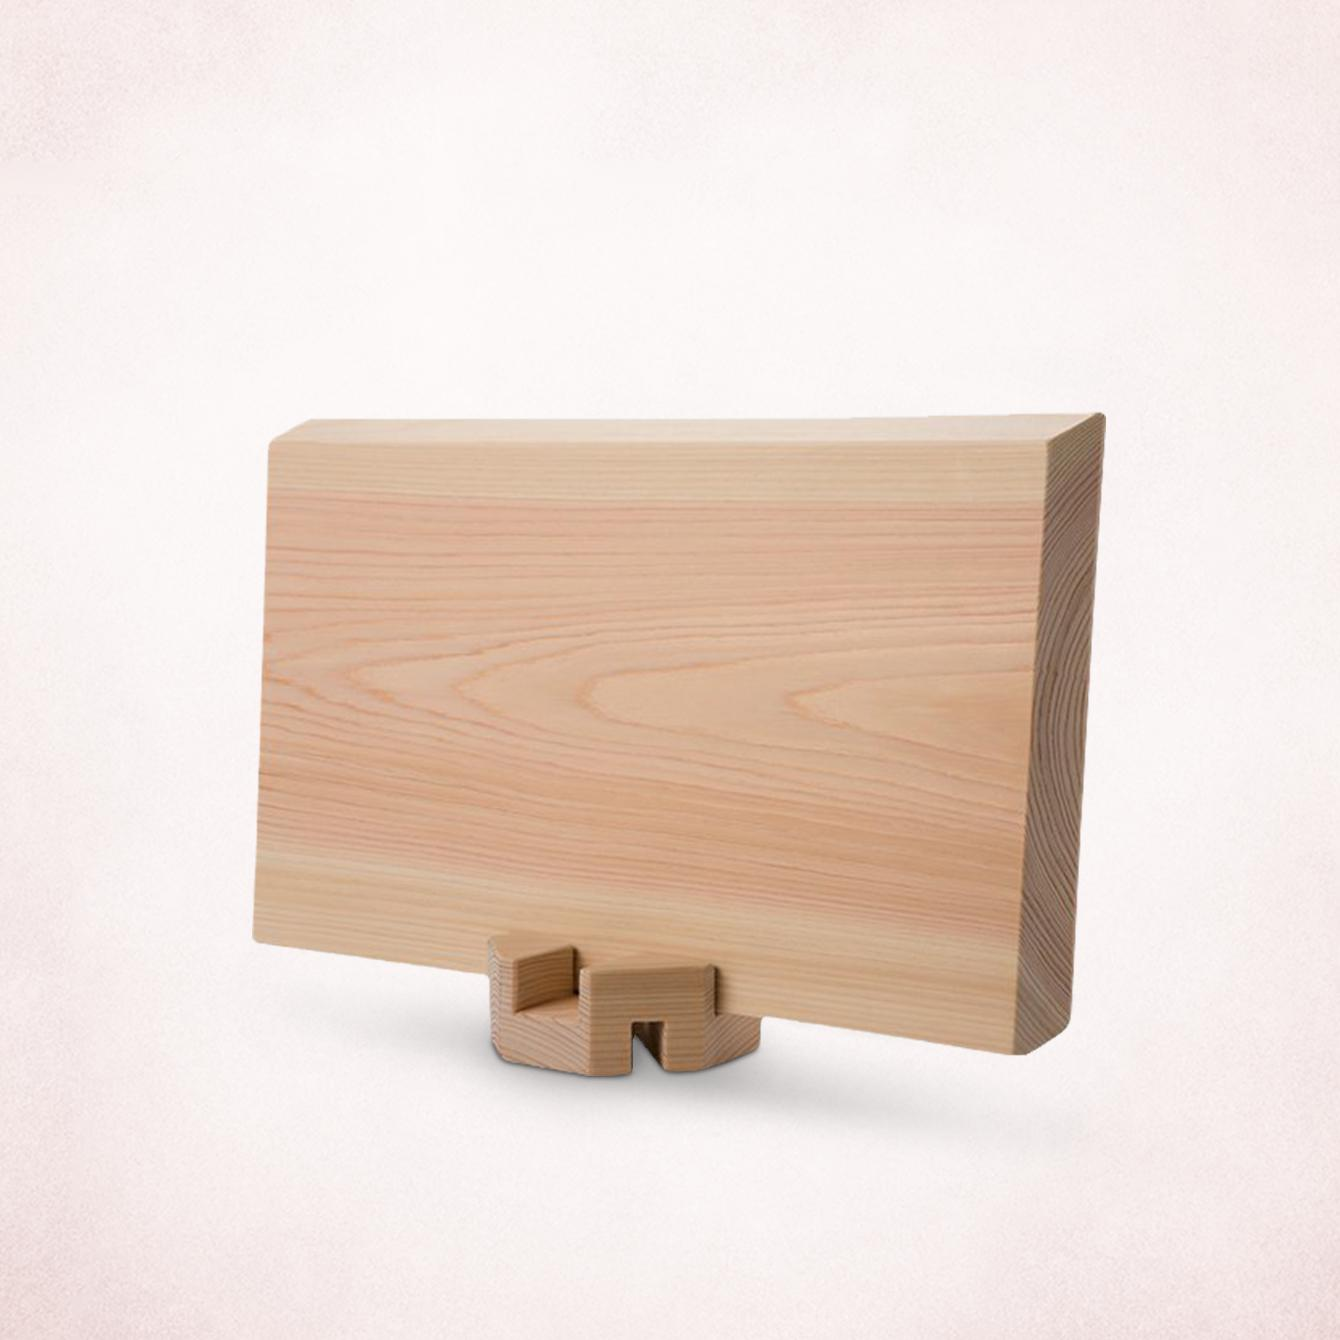 Columbus no Manaita to Stand (Chopping board & stand)